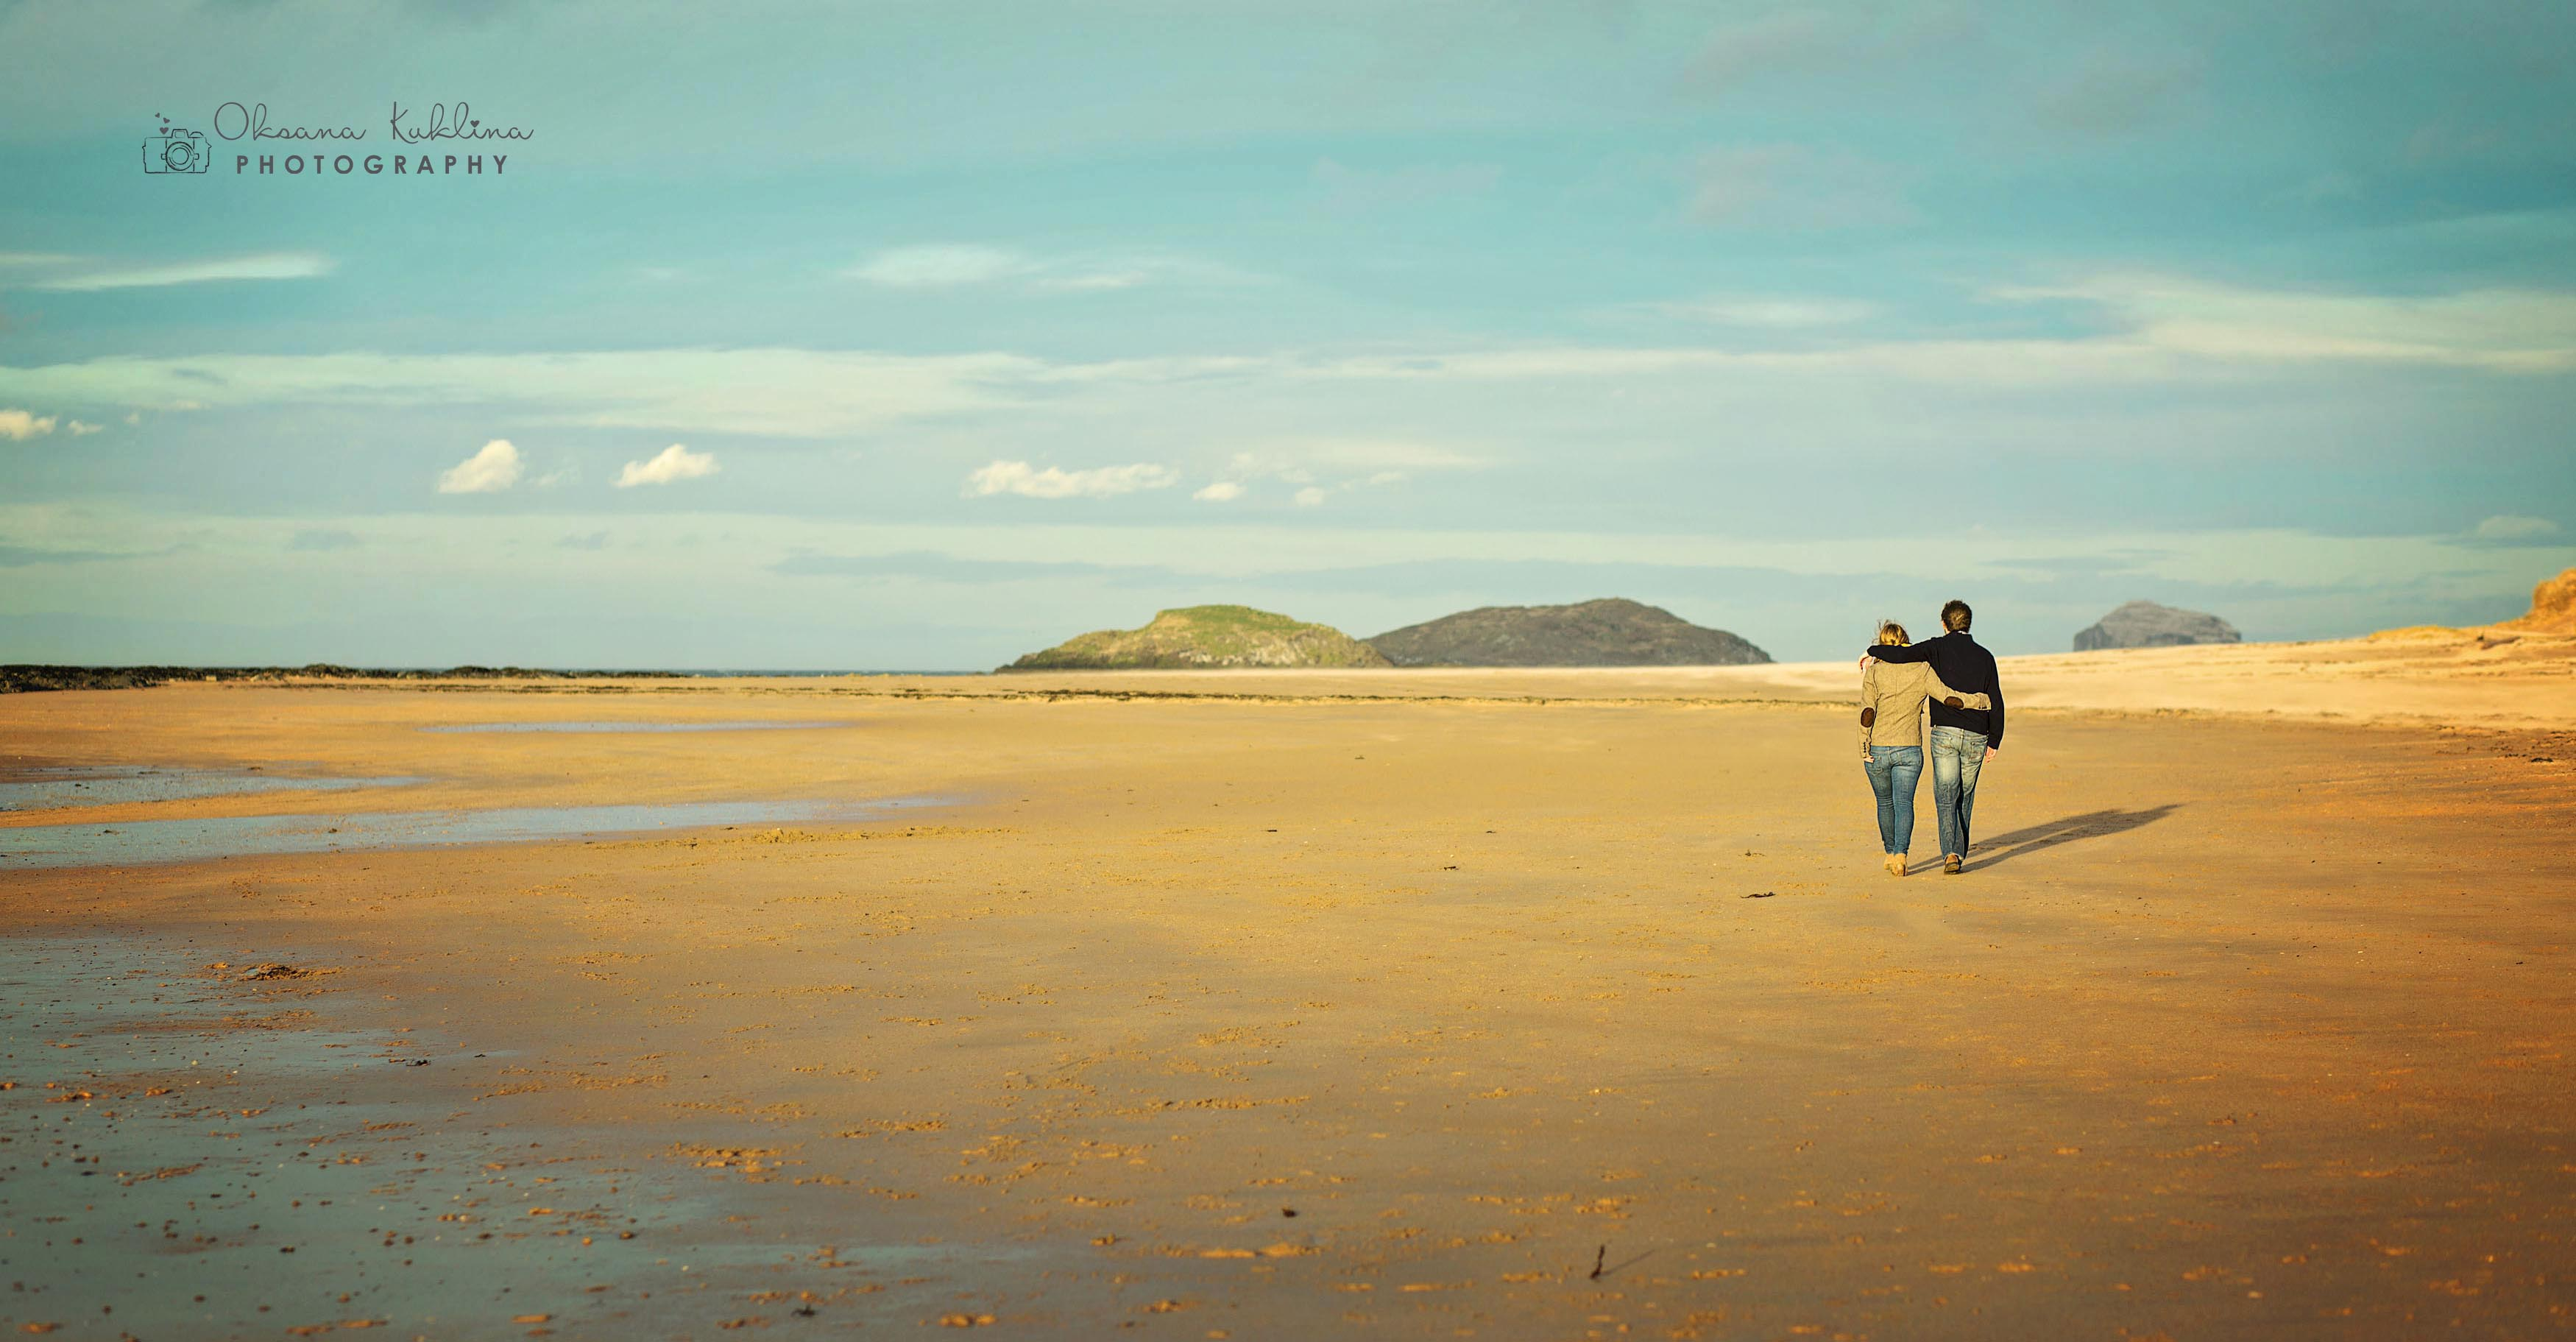 Scotland pre-wedding Photographer  - Beach Engagement Photo Session in Scotland